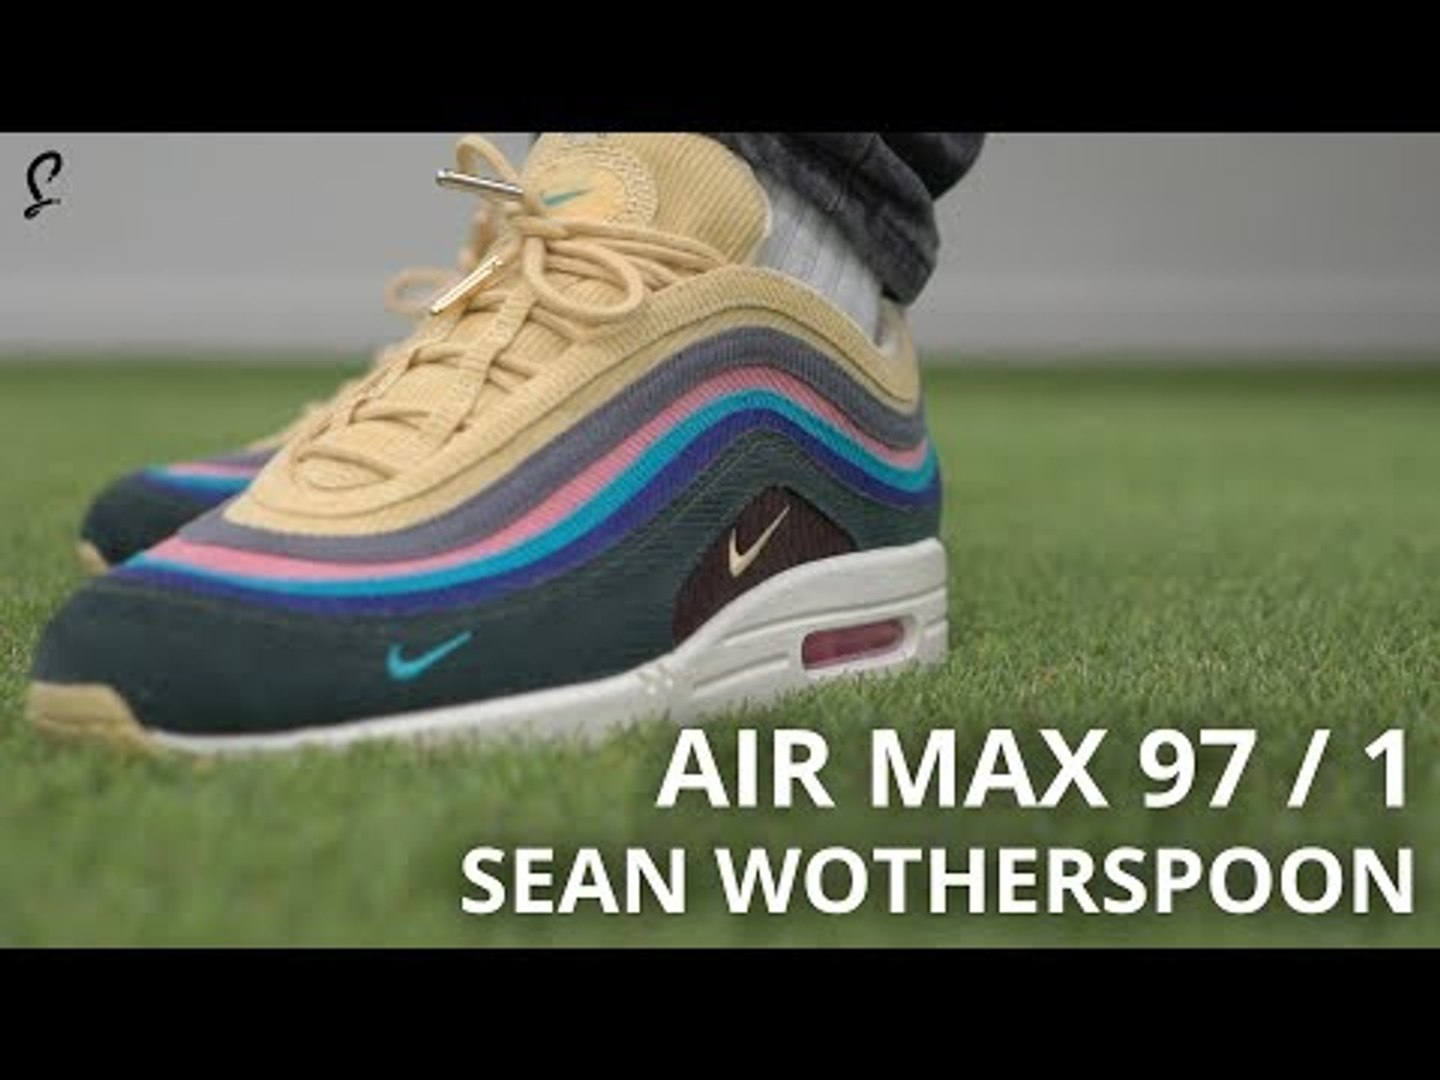 best service 16b40 f453c Boogers and Breakfast - SEAN WOTHERSPOON NIKE AIR MAX 97/1 UNBOXING